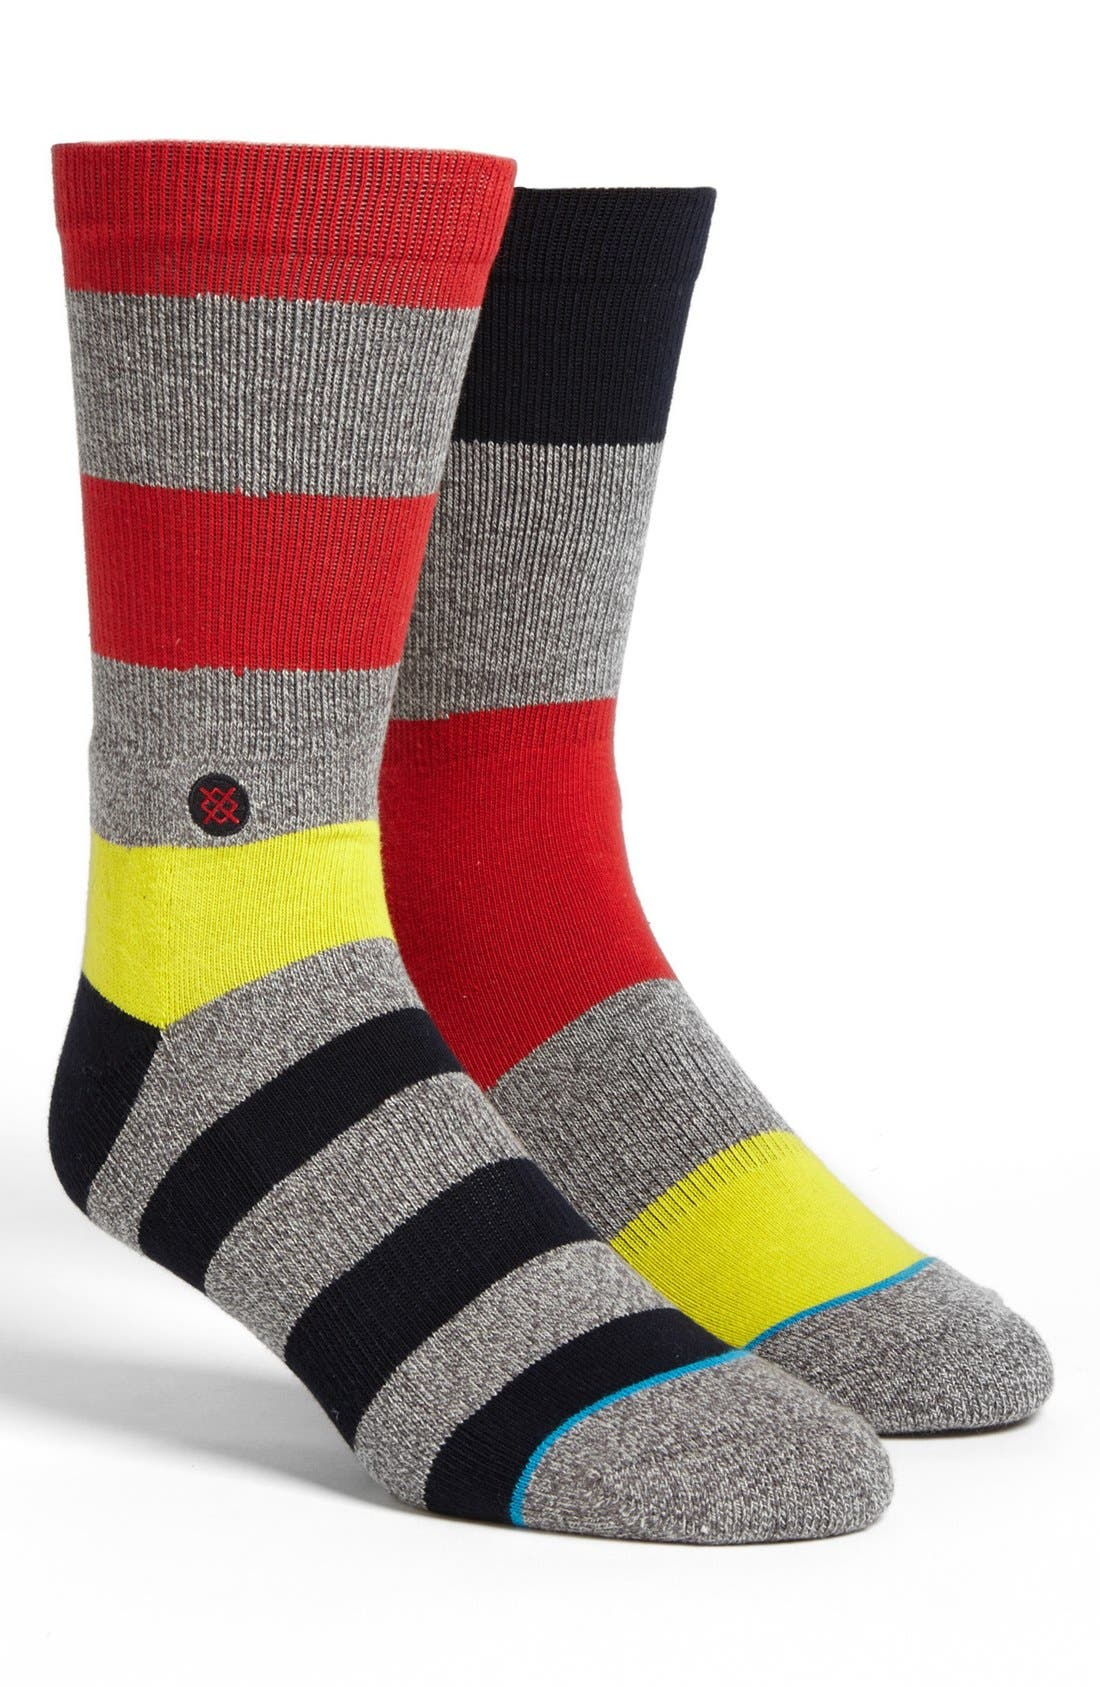 Main Image - Stance 'Galley' Socks